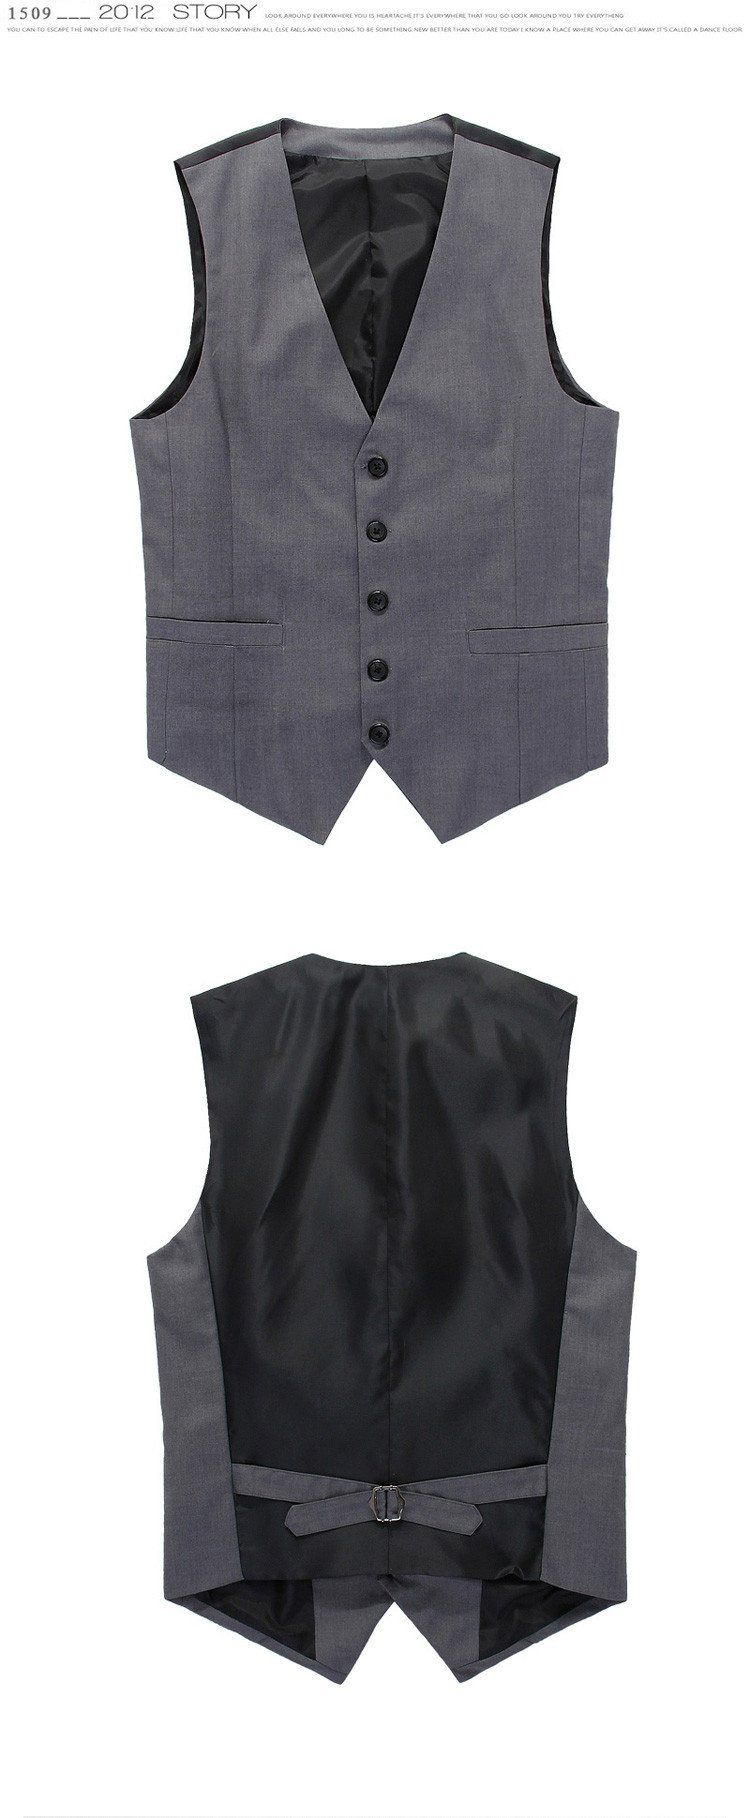 Men's Vest and Pants - TrendSettingFashions   - 1